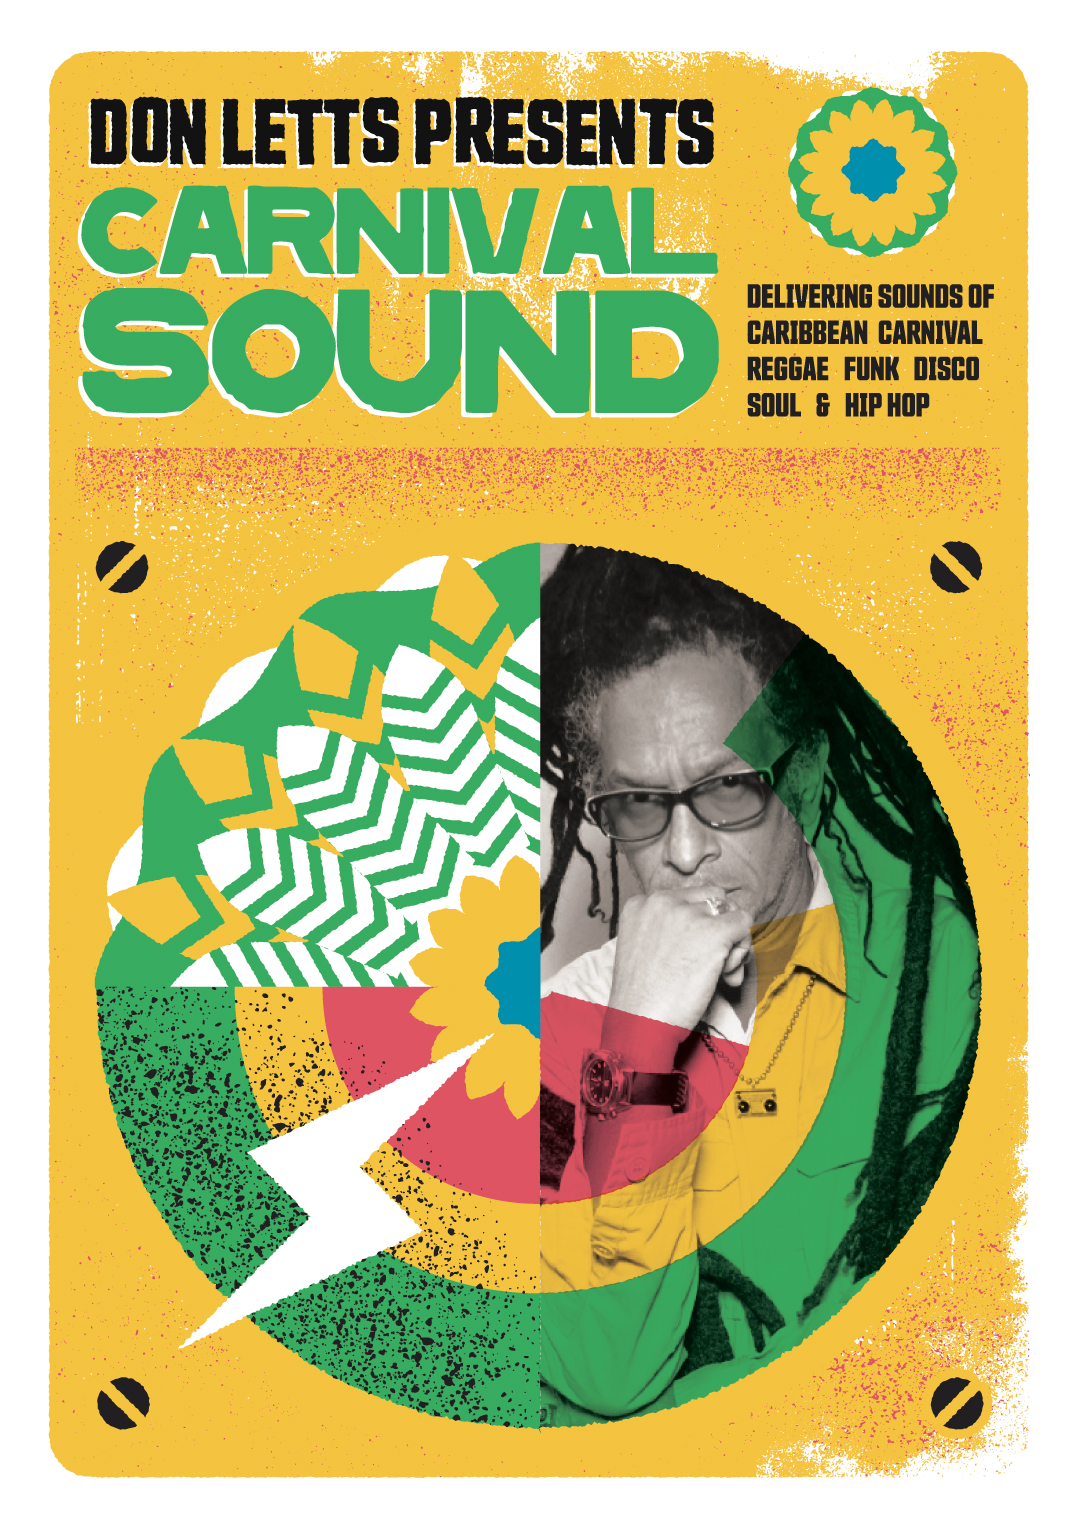 Don Letts presents Carnival Sound Clubnight - Band on the Wall